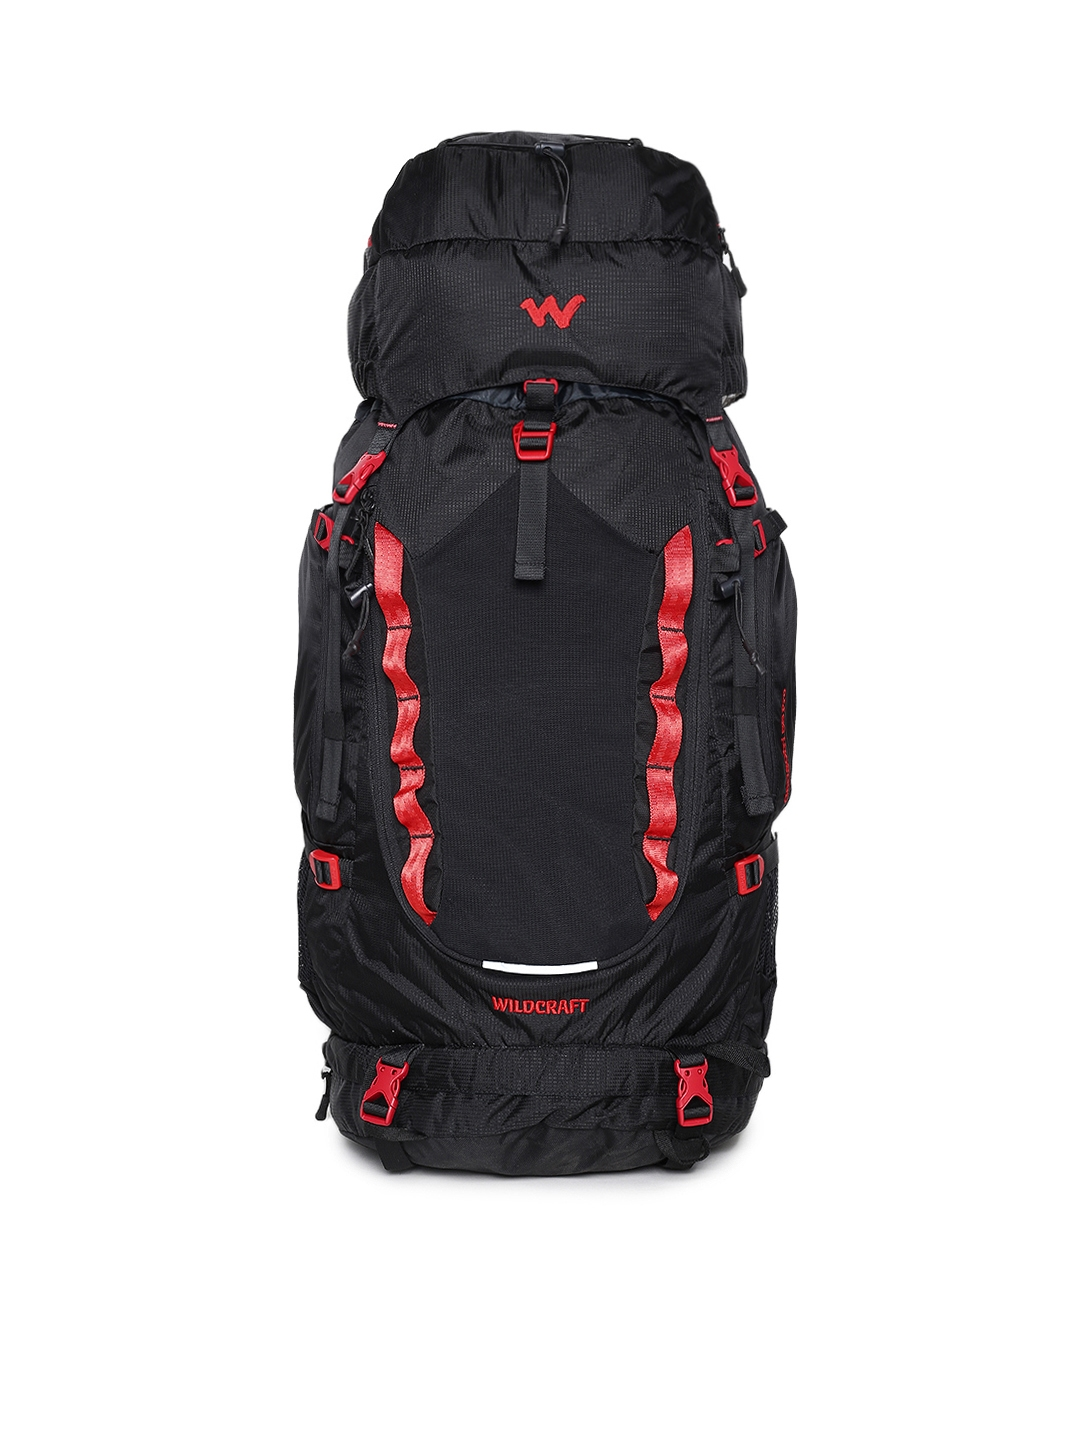 Buy Wildcraft Unisex Black Gangotri 55 Pro Rucksack - Rucksacks for ... 5e6d99a5ff9a0